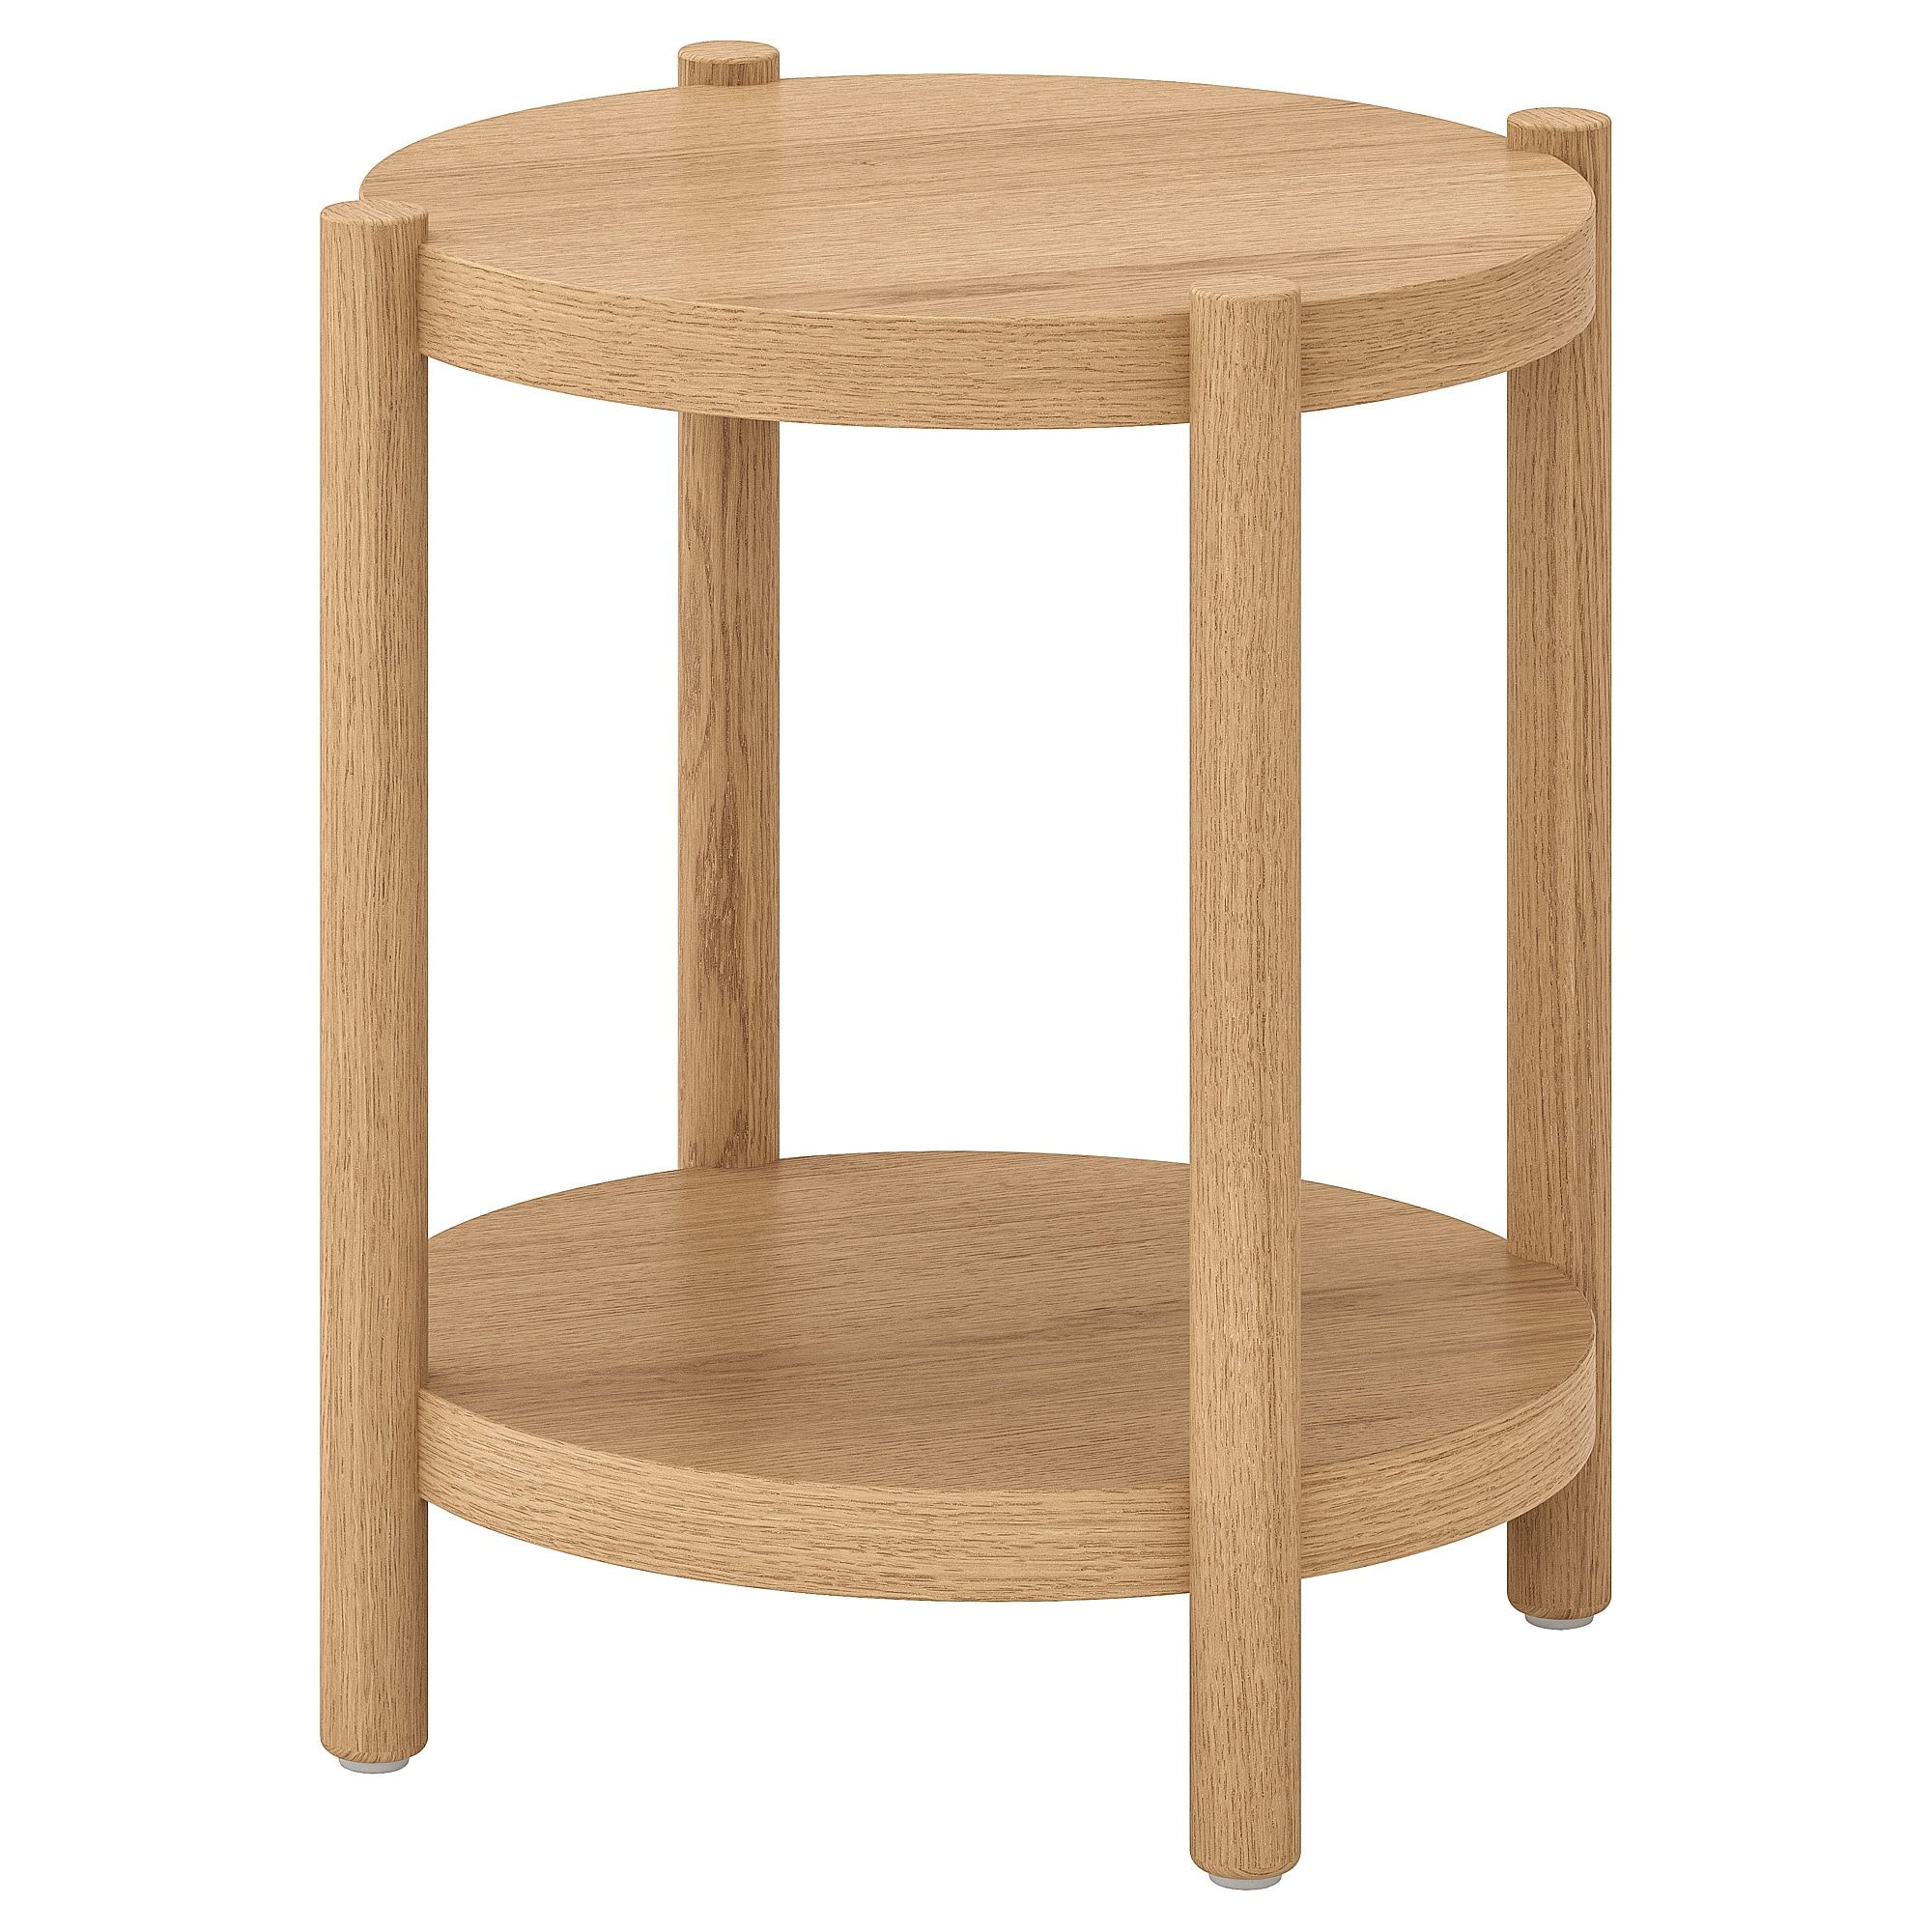 Listerby Table D Appoint Teinte Blanc Chene 50 Cm Table D Appoint Mobilier De Salon Table D Appoint Ikea